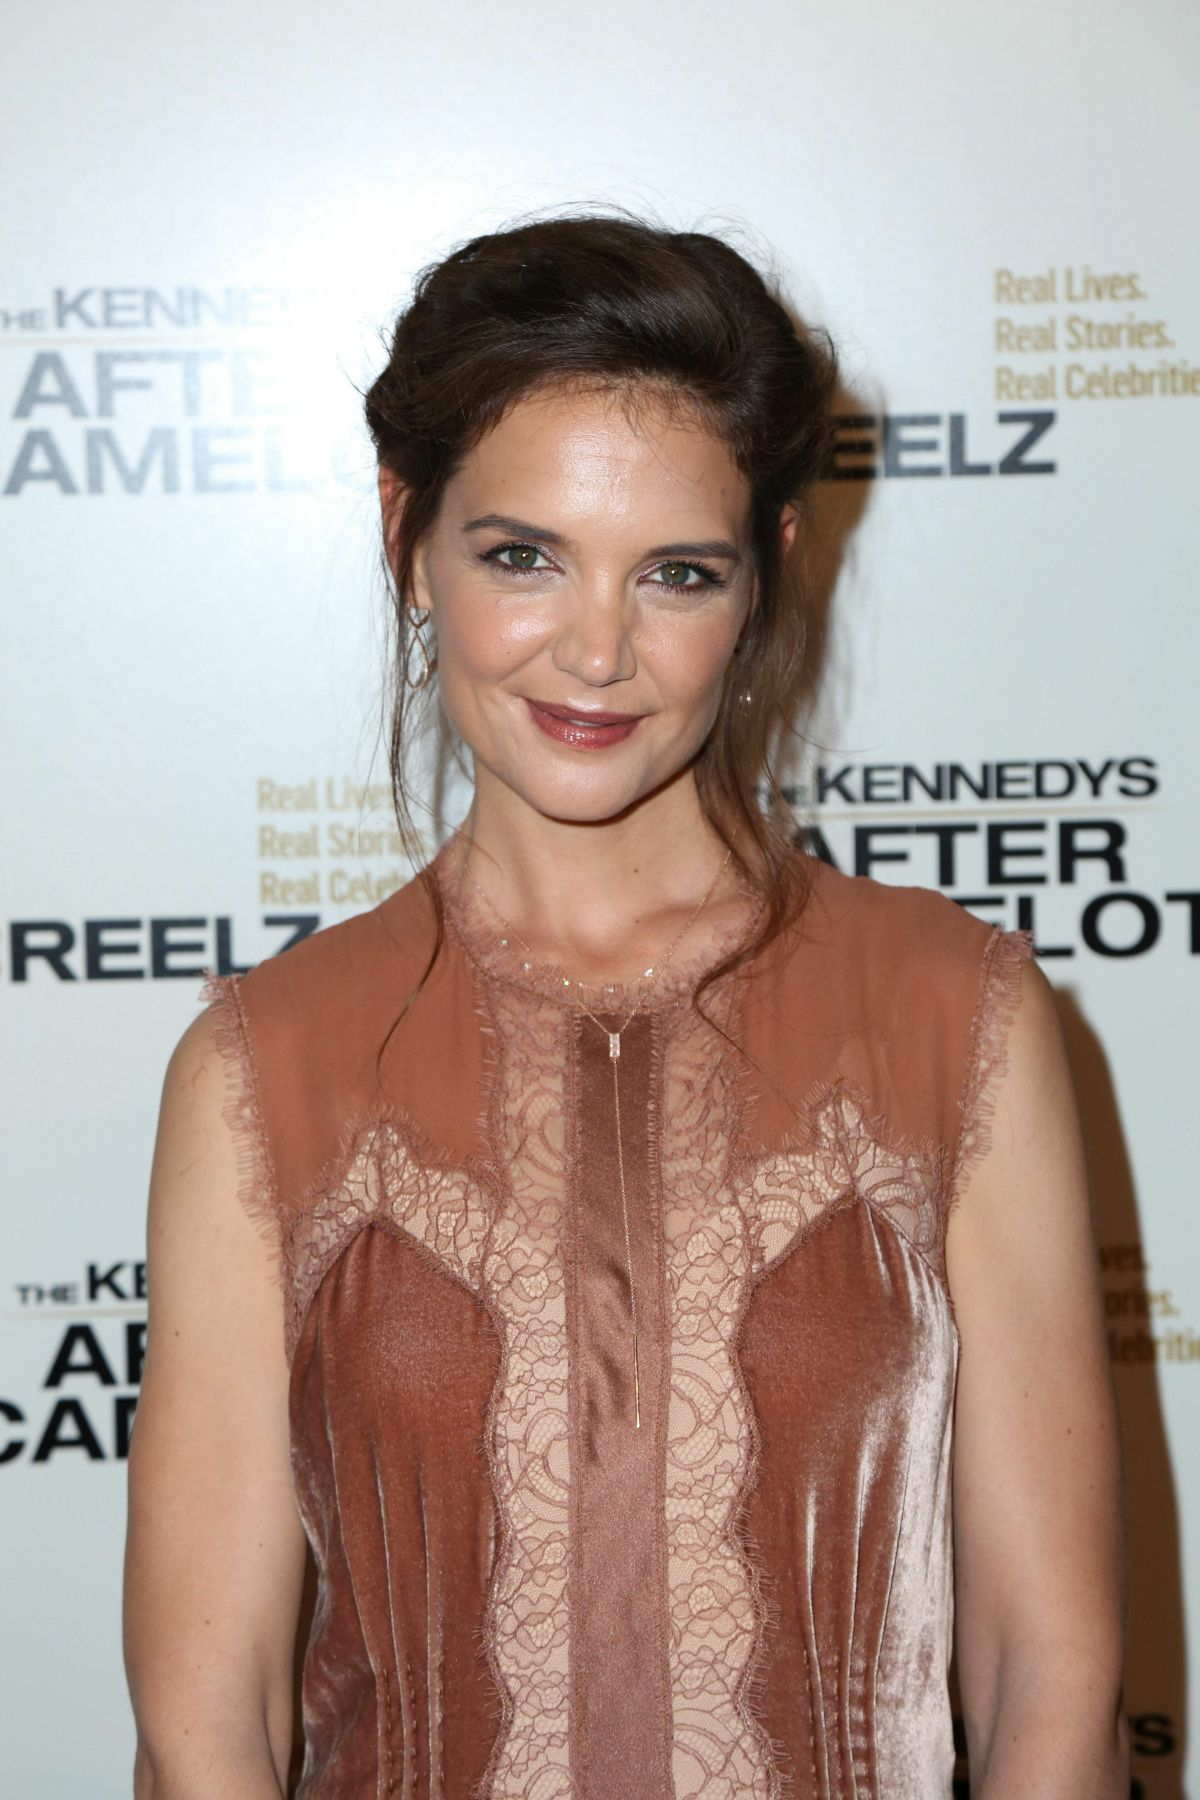 KATIE HOLMES at Kennedys After Camelot Premiere in Beverly Hills 03/15/2017